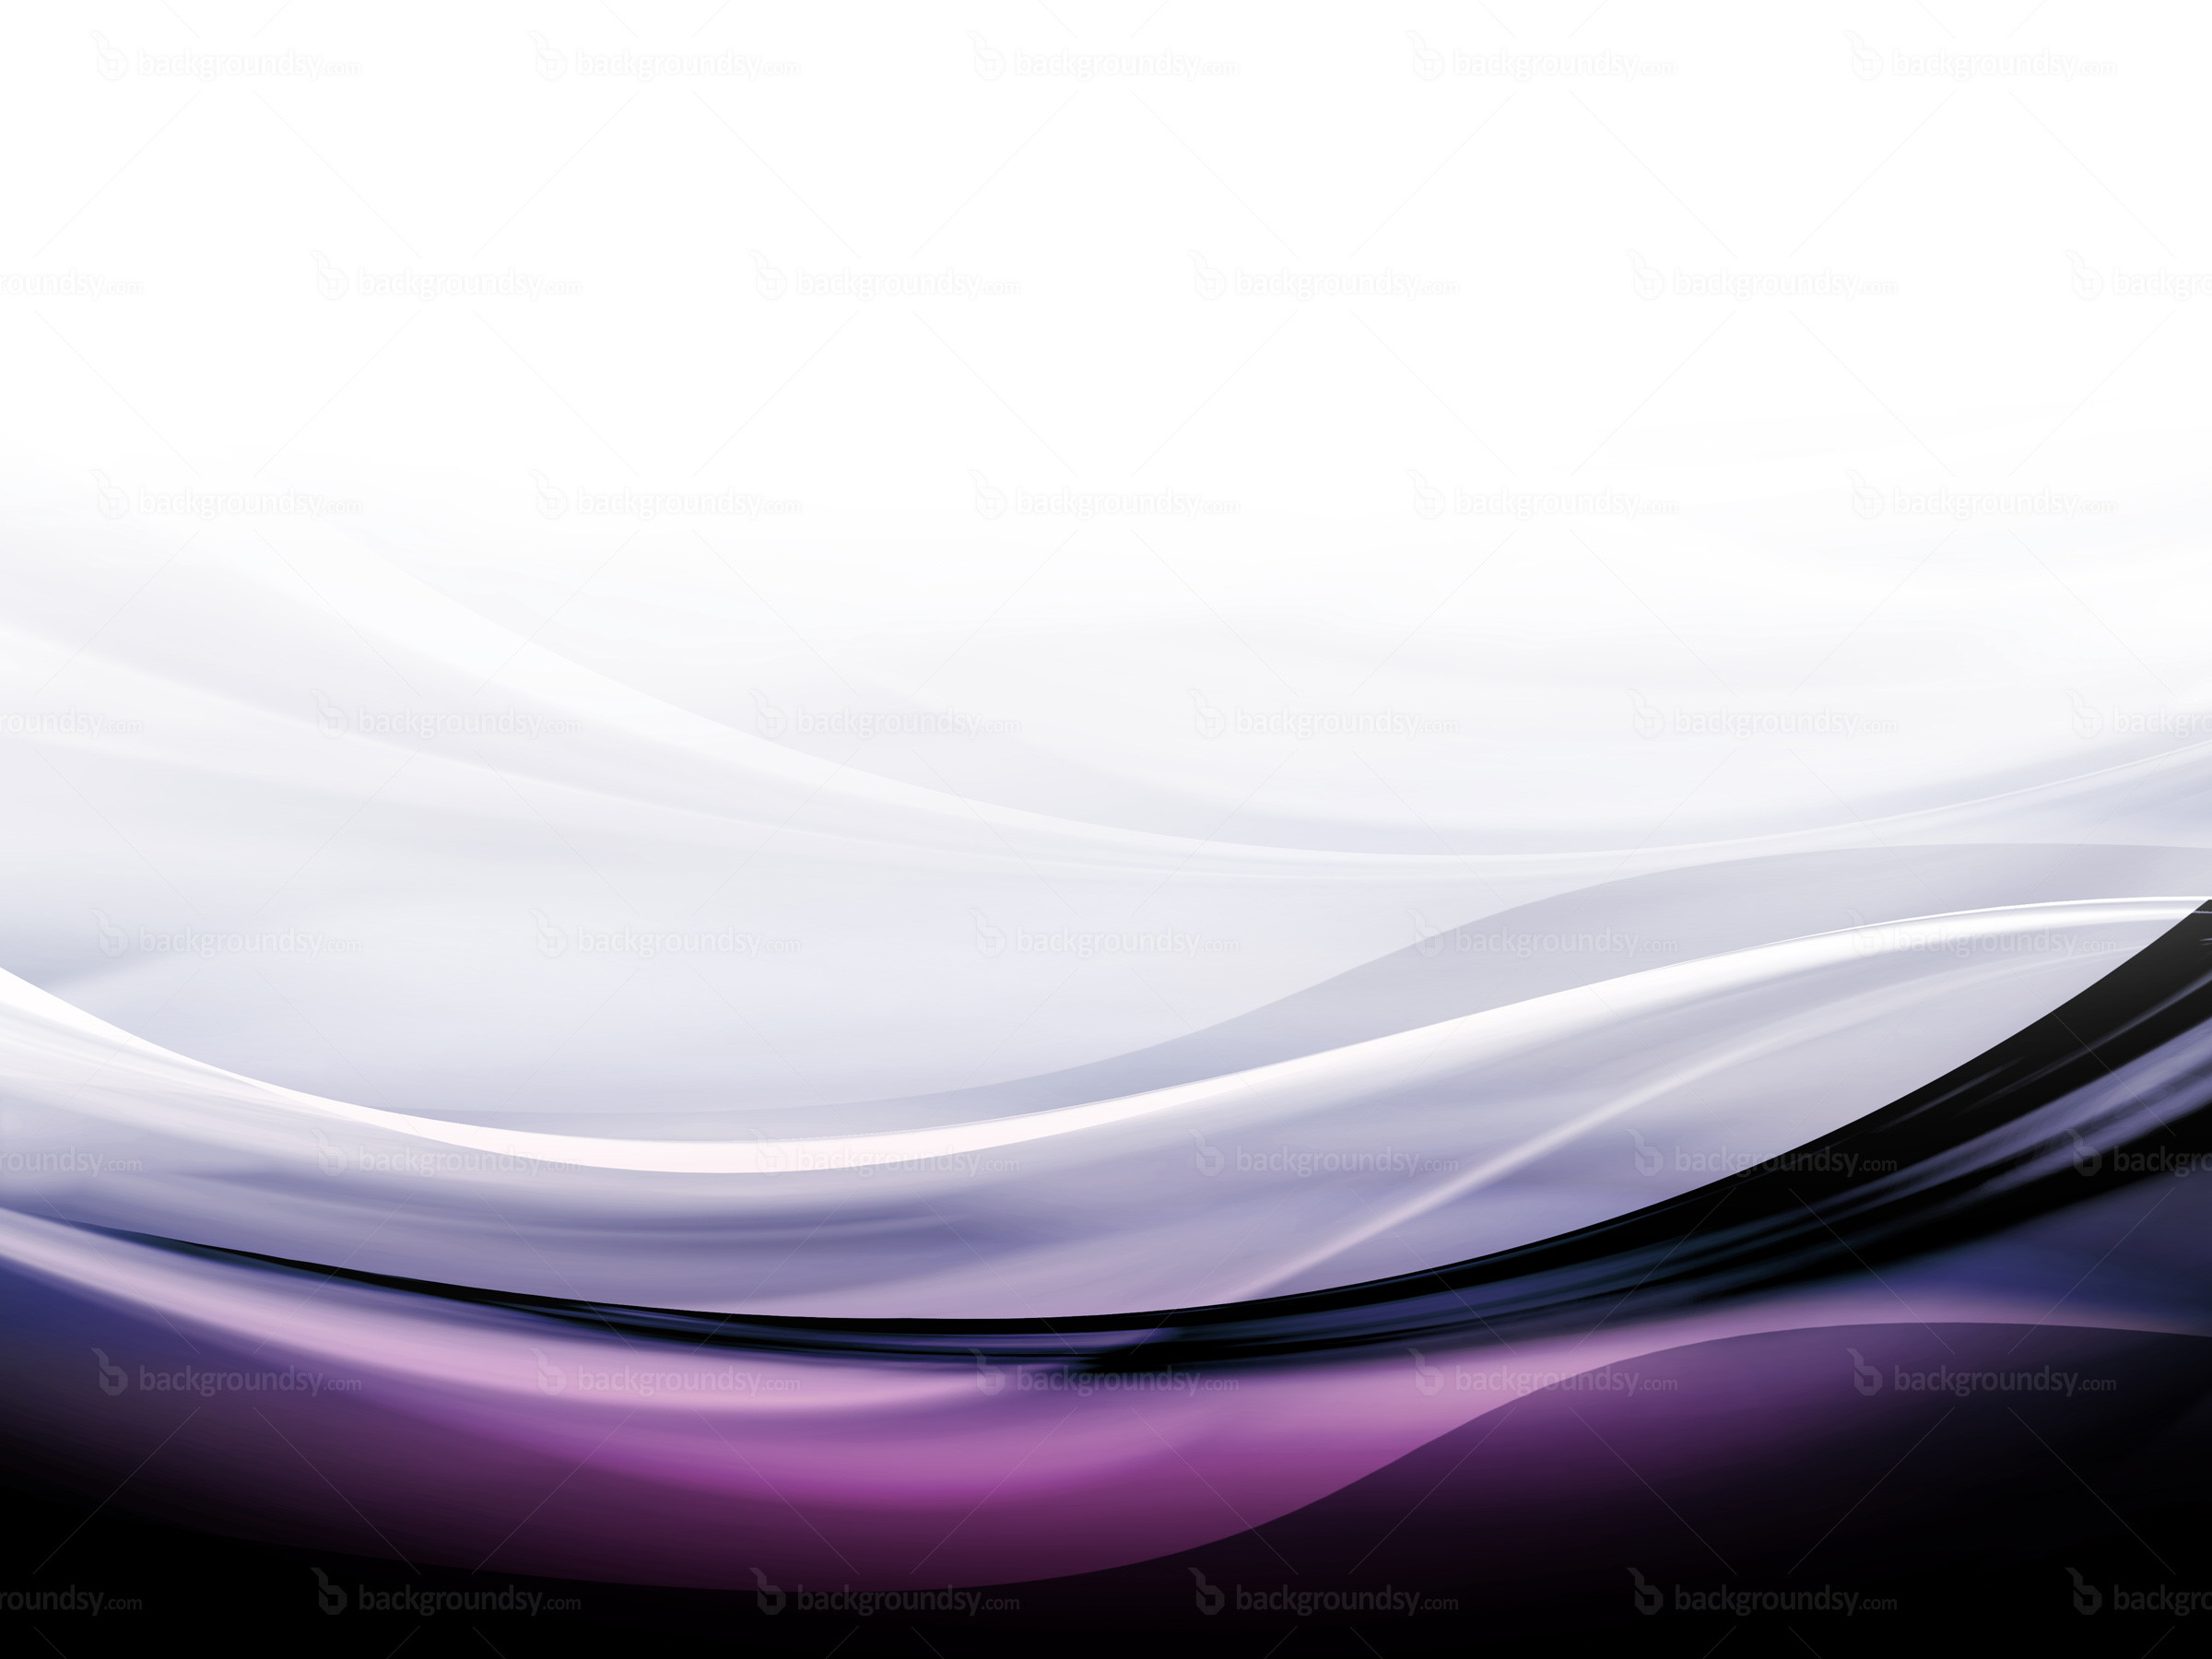 Abstract purple background | Backgroundsy.com